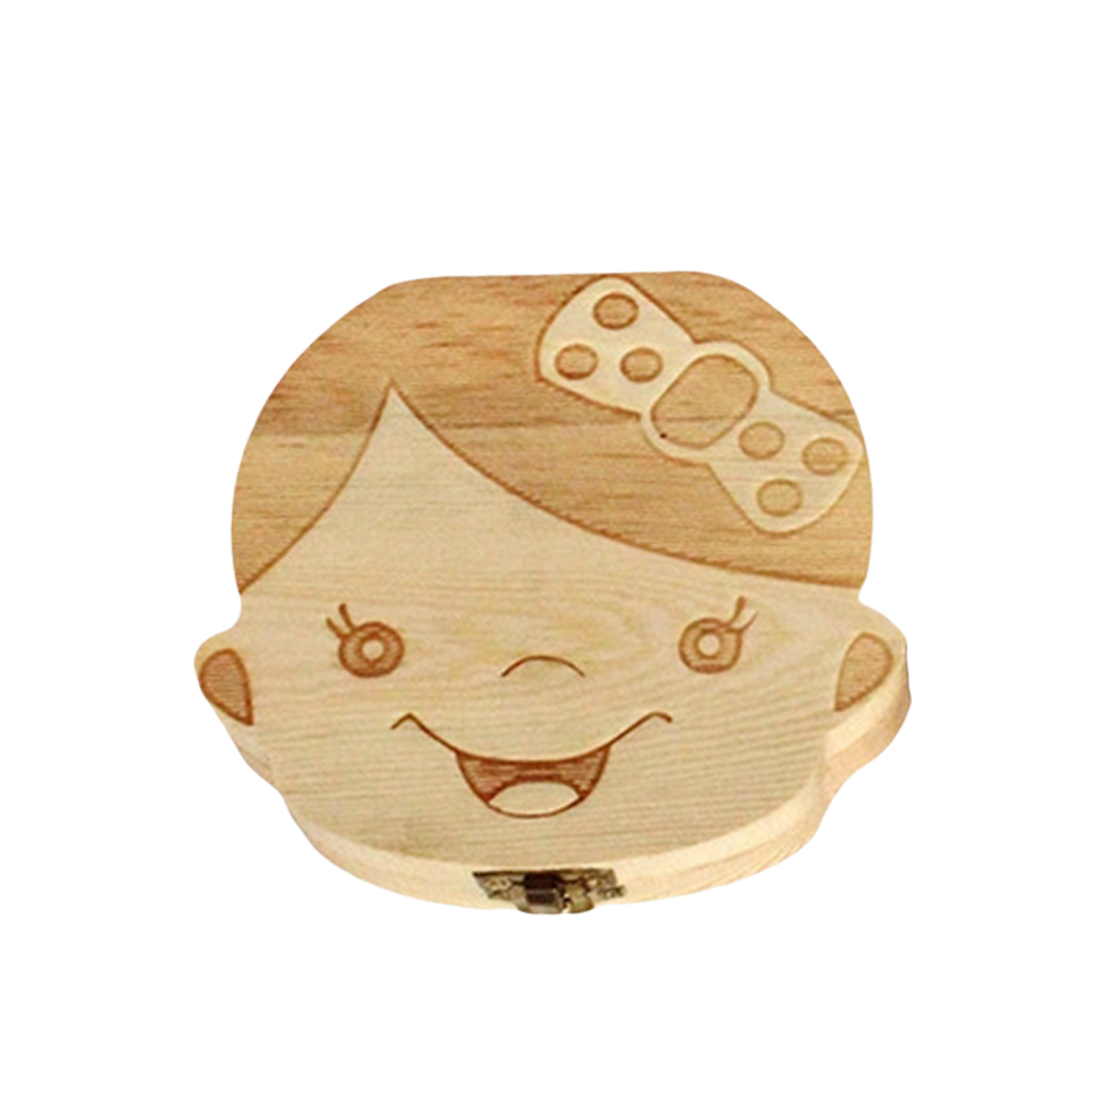 Tooth Storage Box For Boy Girl Save Teeth Umbilical Cord New English Wooden Baby Tooth Box Organizer Milk